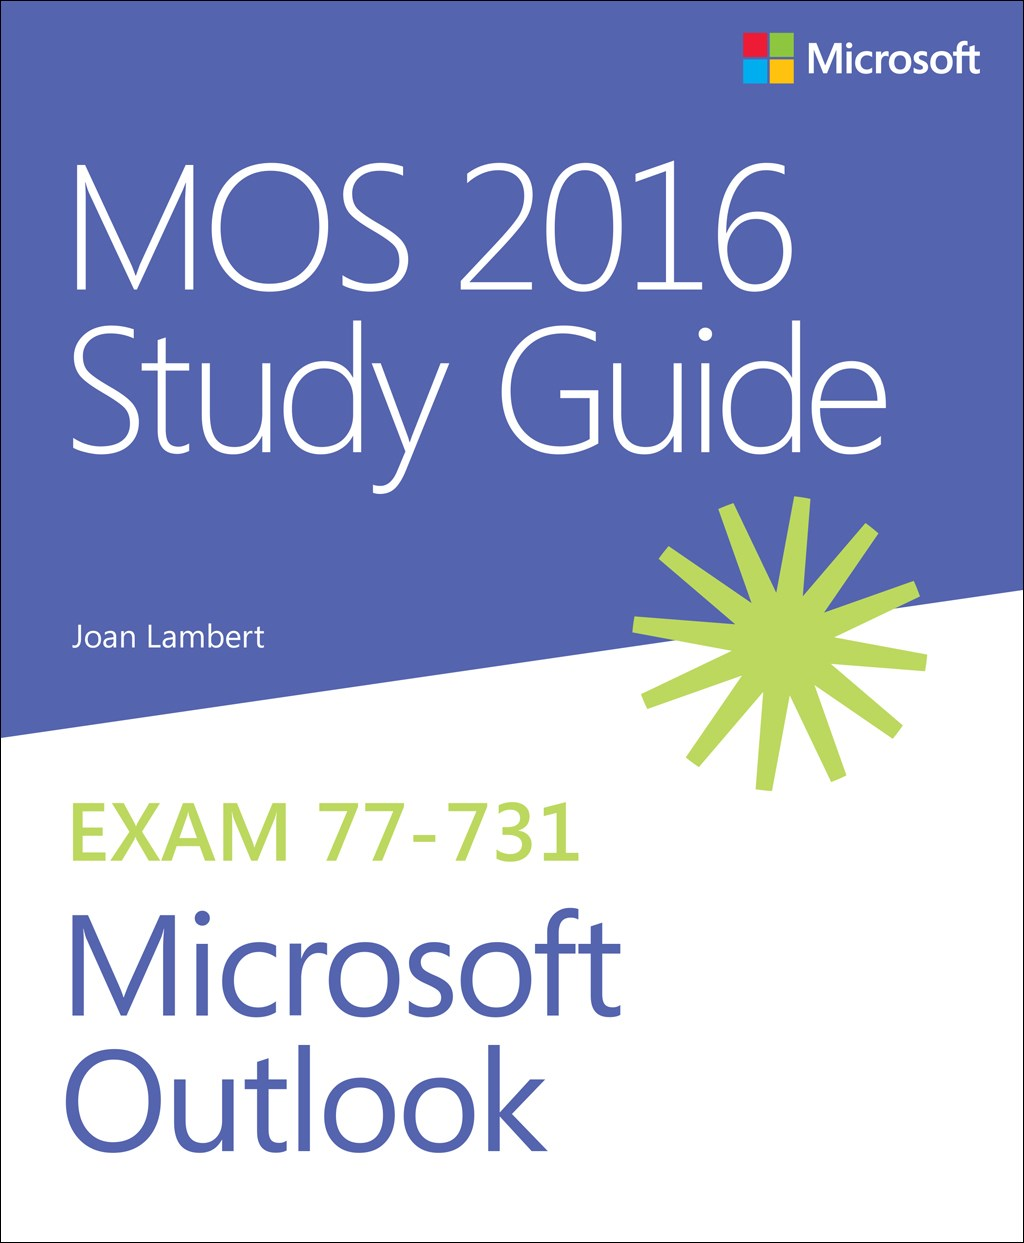 MOS 2016 Study Guide for Microsoft Outlook